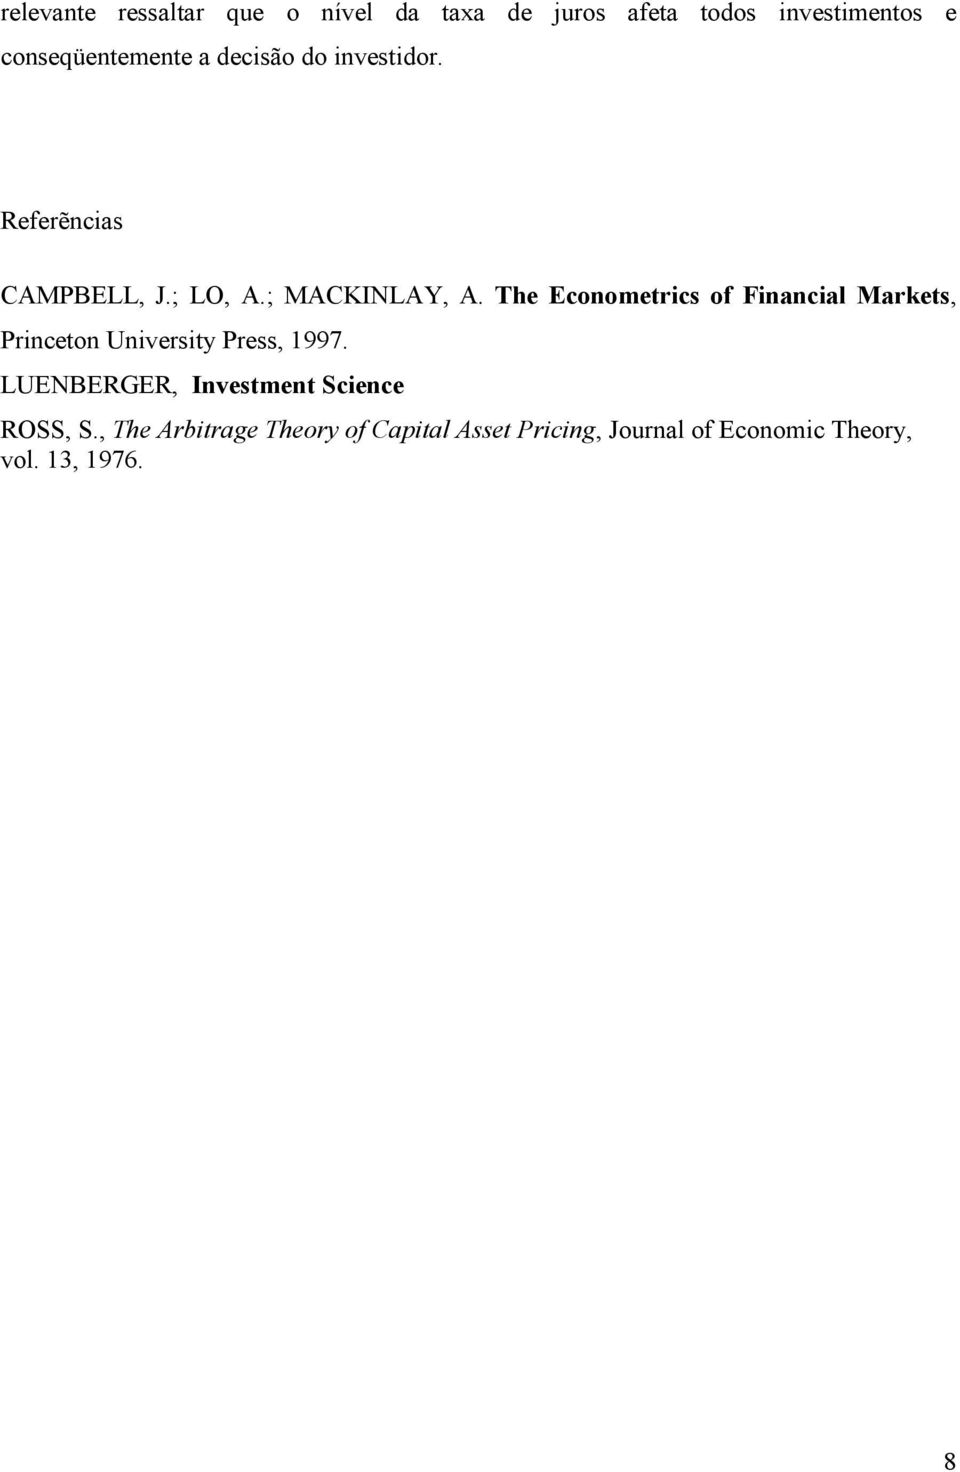 The Ecoometrcs of Facal Markets, Prceto Uversty Press, 1997.